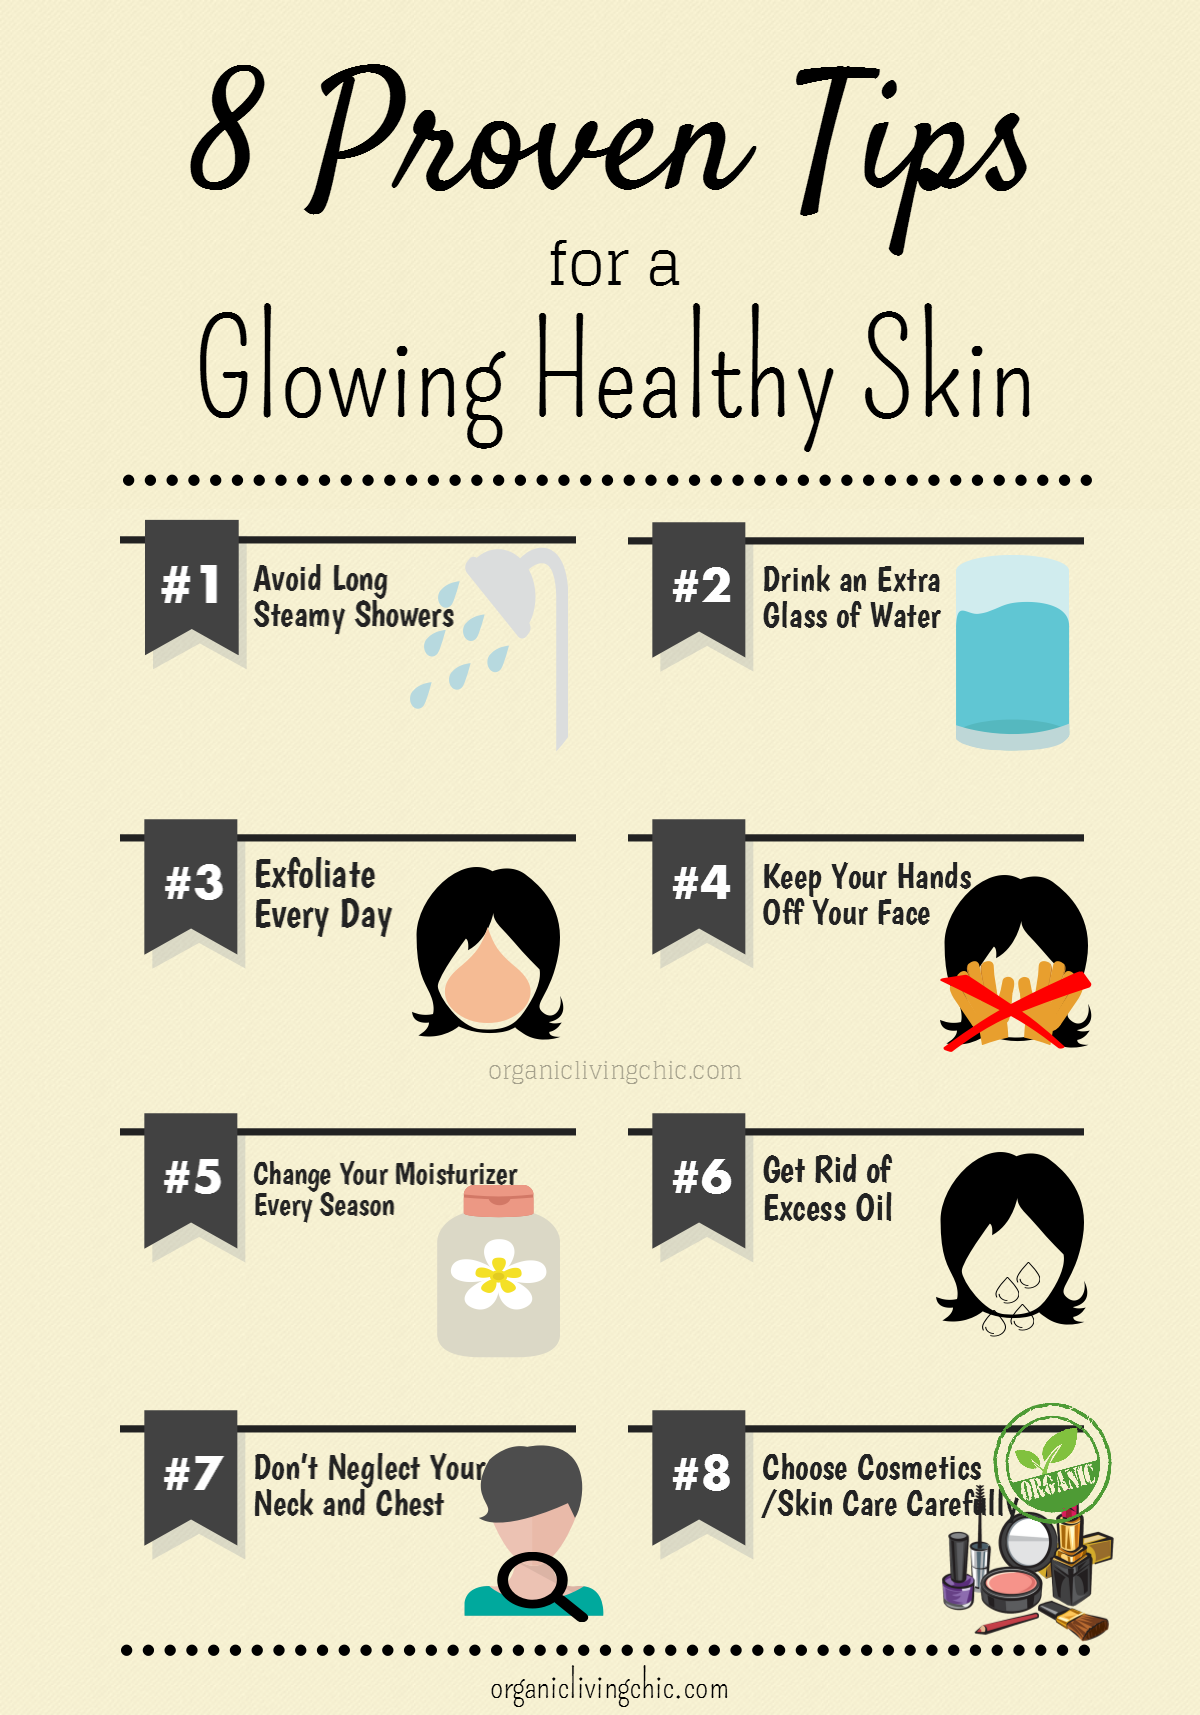 8 proven tips for healthy glowing skin, tips for glowing skin, organic living chic infographic, tips for healthy skin, how to keep skin glowing, organic skin care tips, organic cosmetics